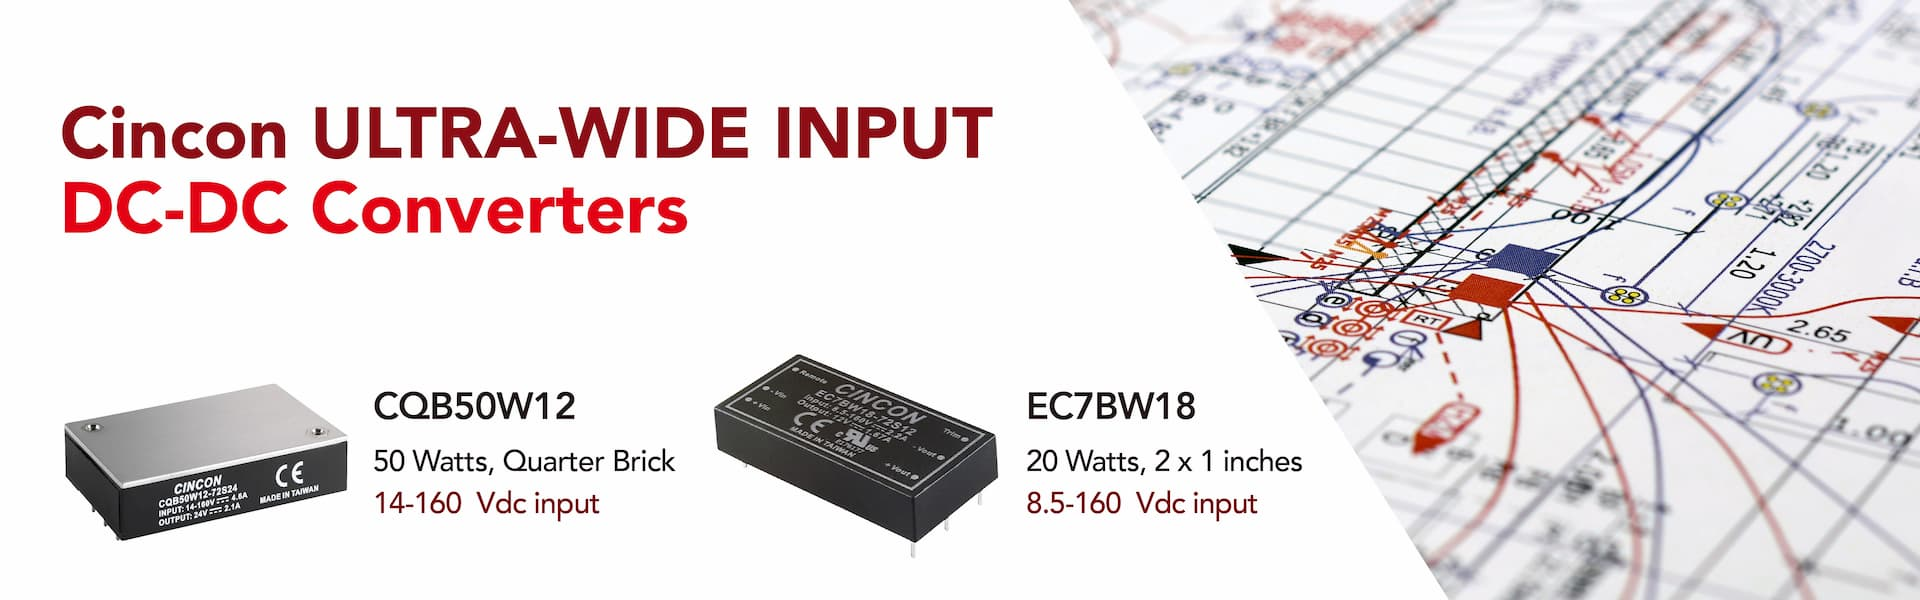 AC/DC&DC/DC Power Supplies